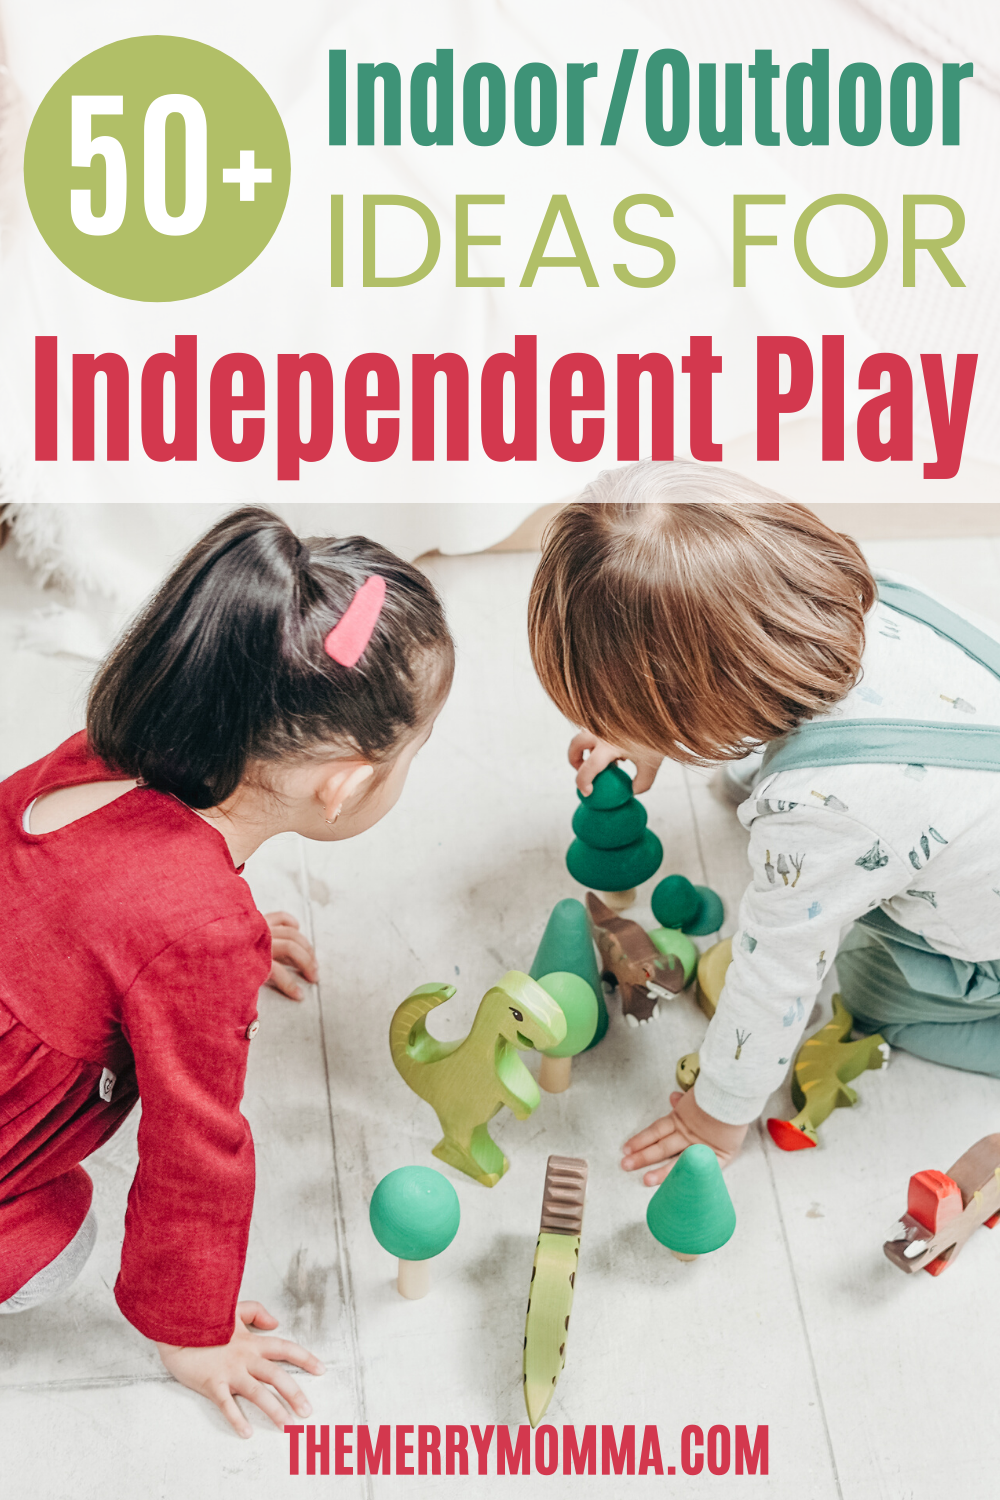 50+ Indoor/Outdoor Independent Play Ideas for Kids